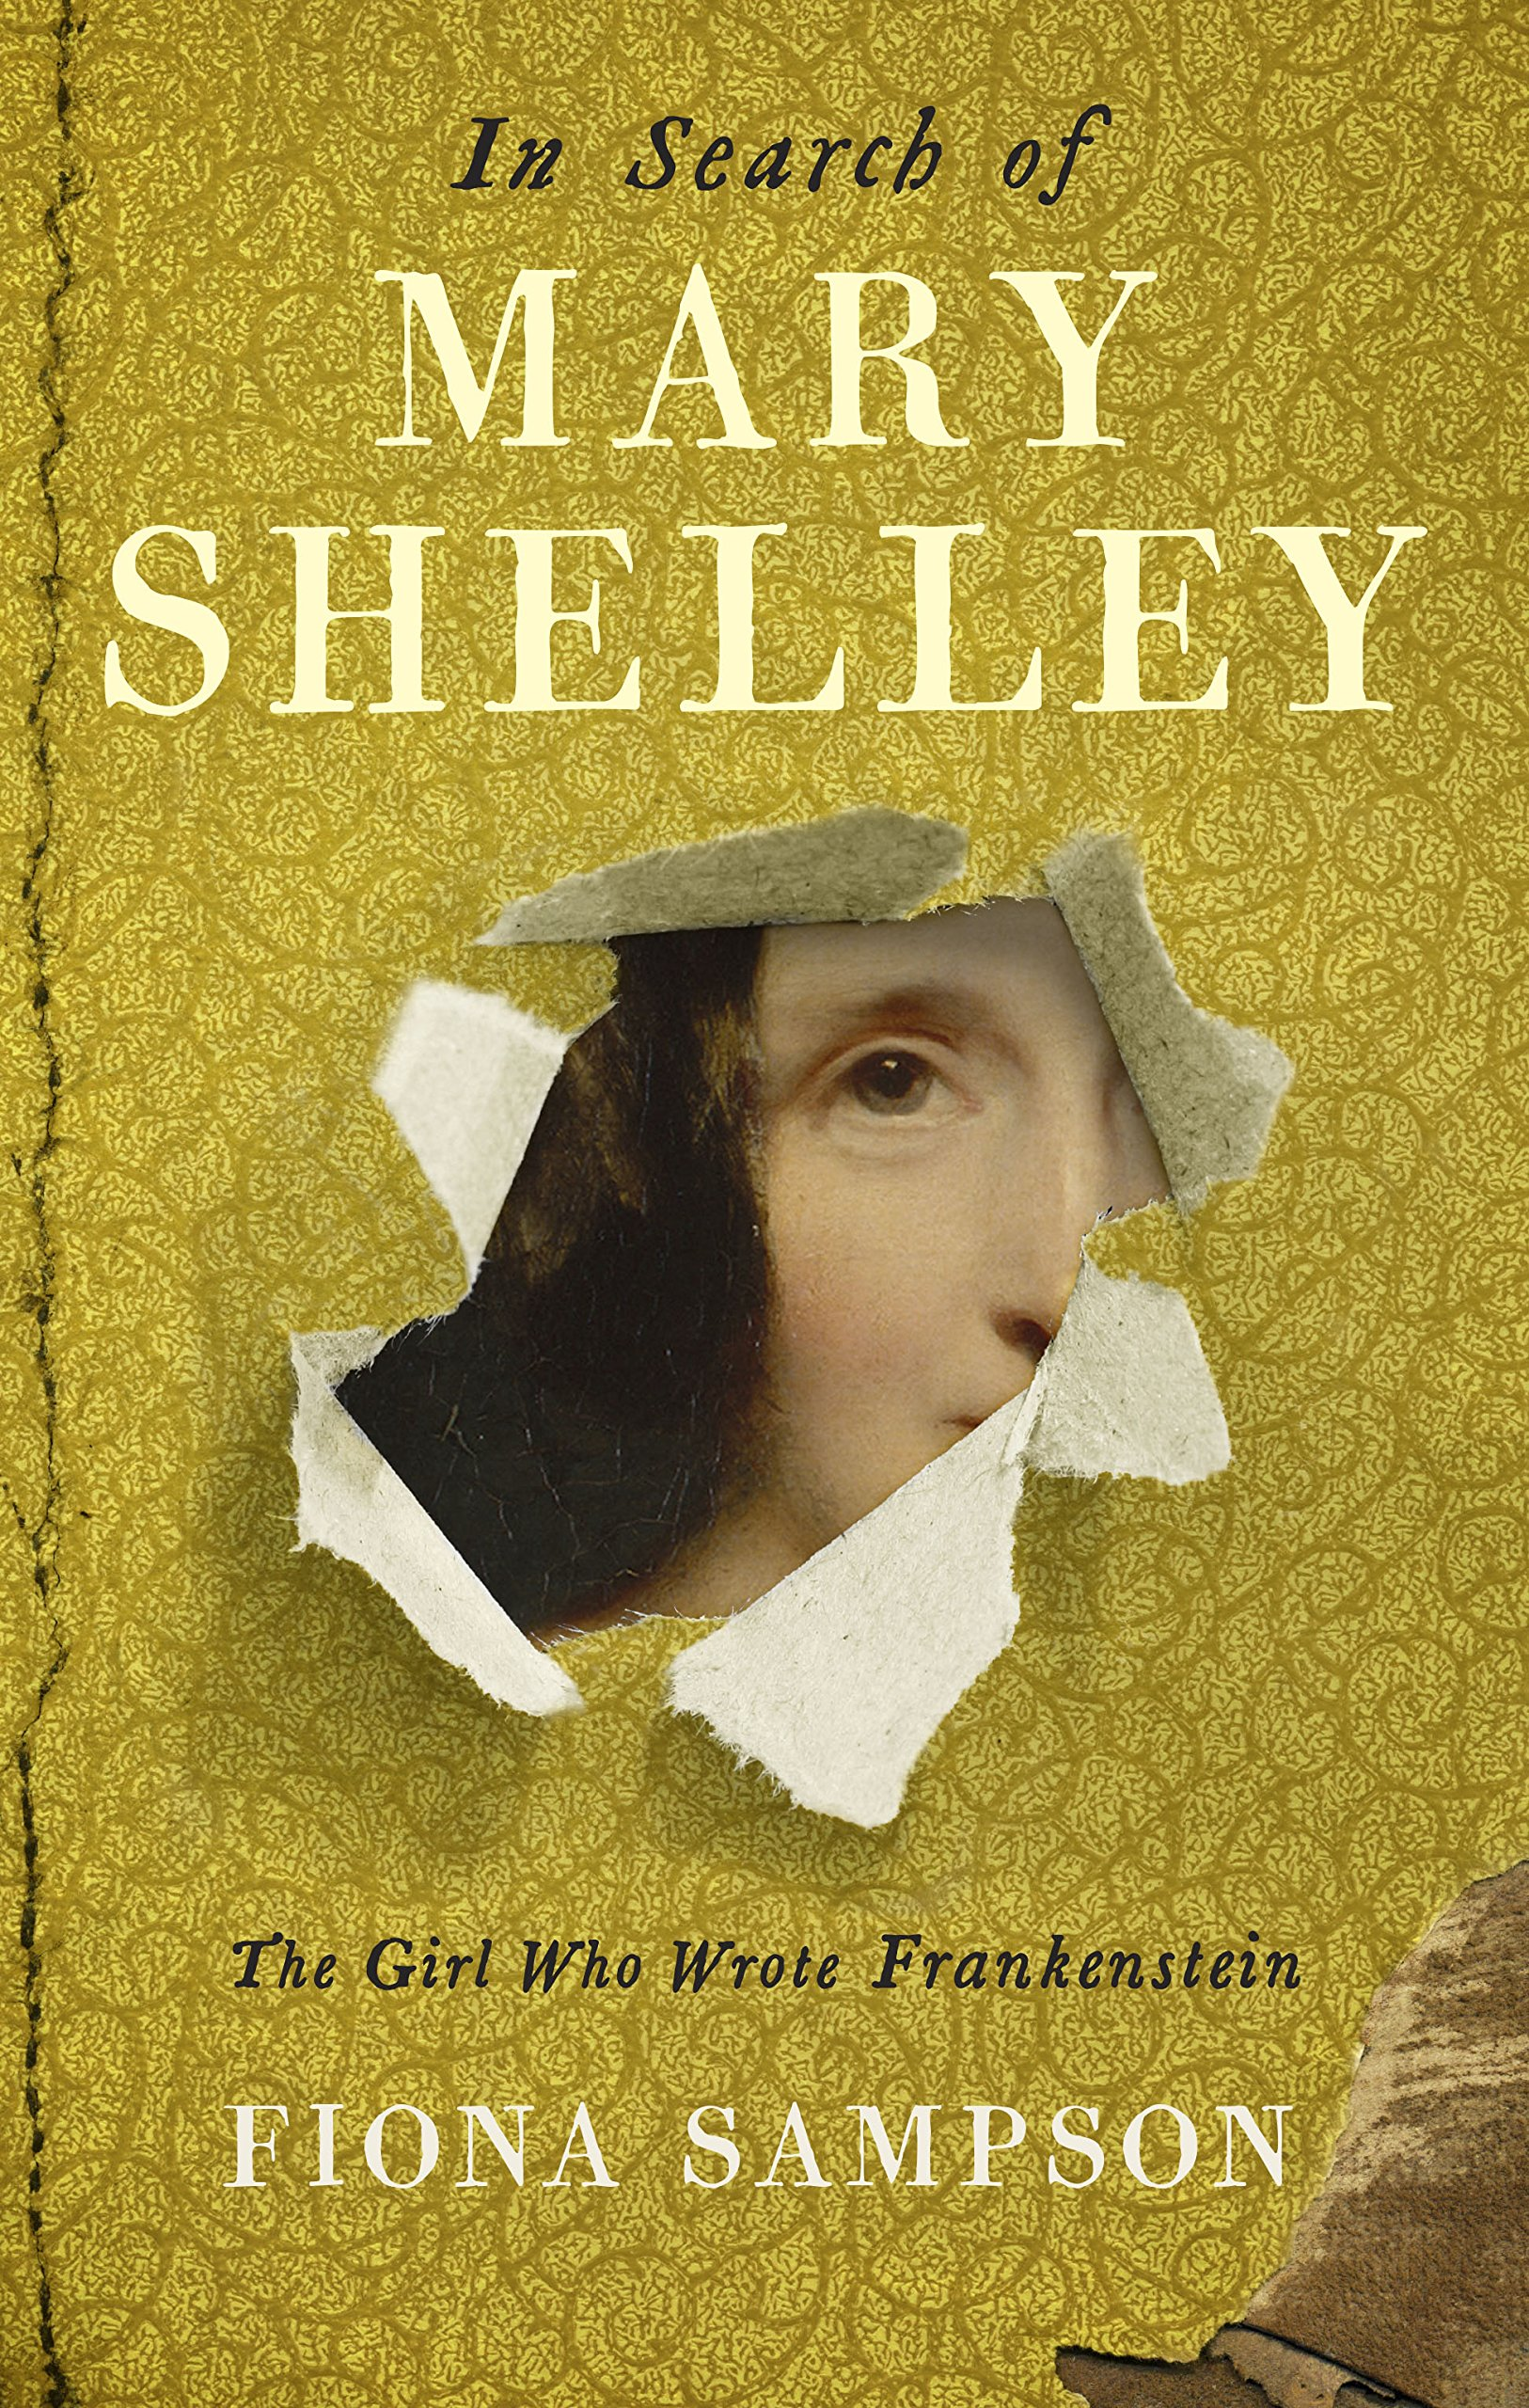 Image result for fiona sampson mary shelley